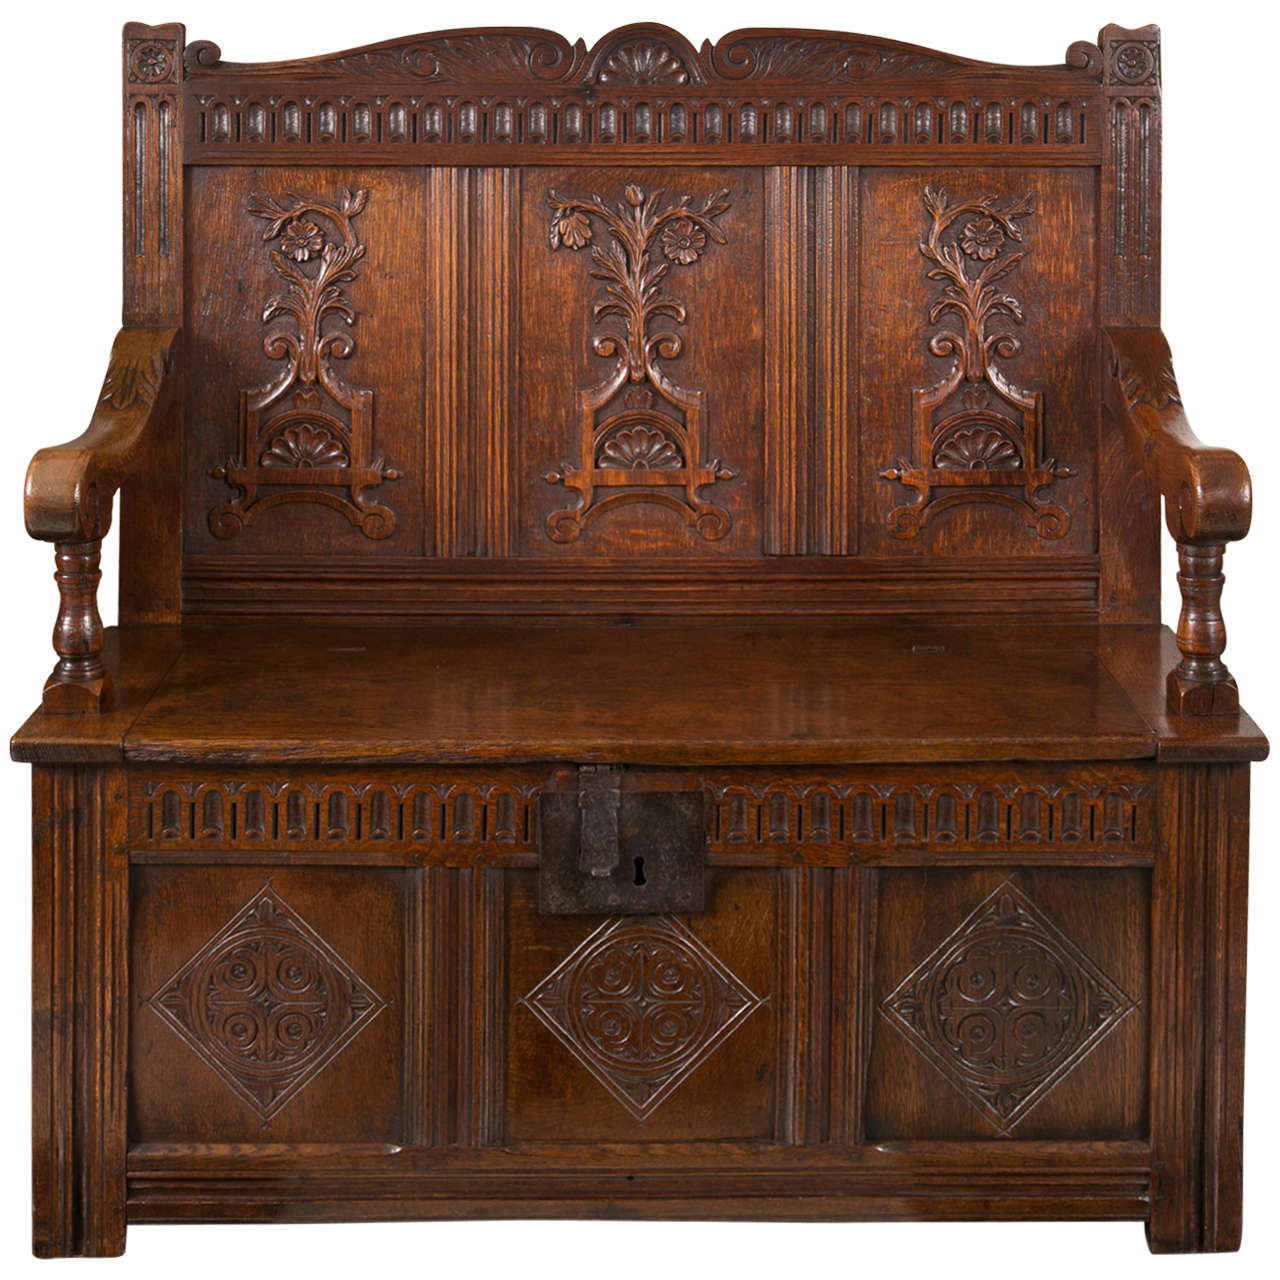 Carved Oak Settle with Storage